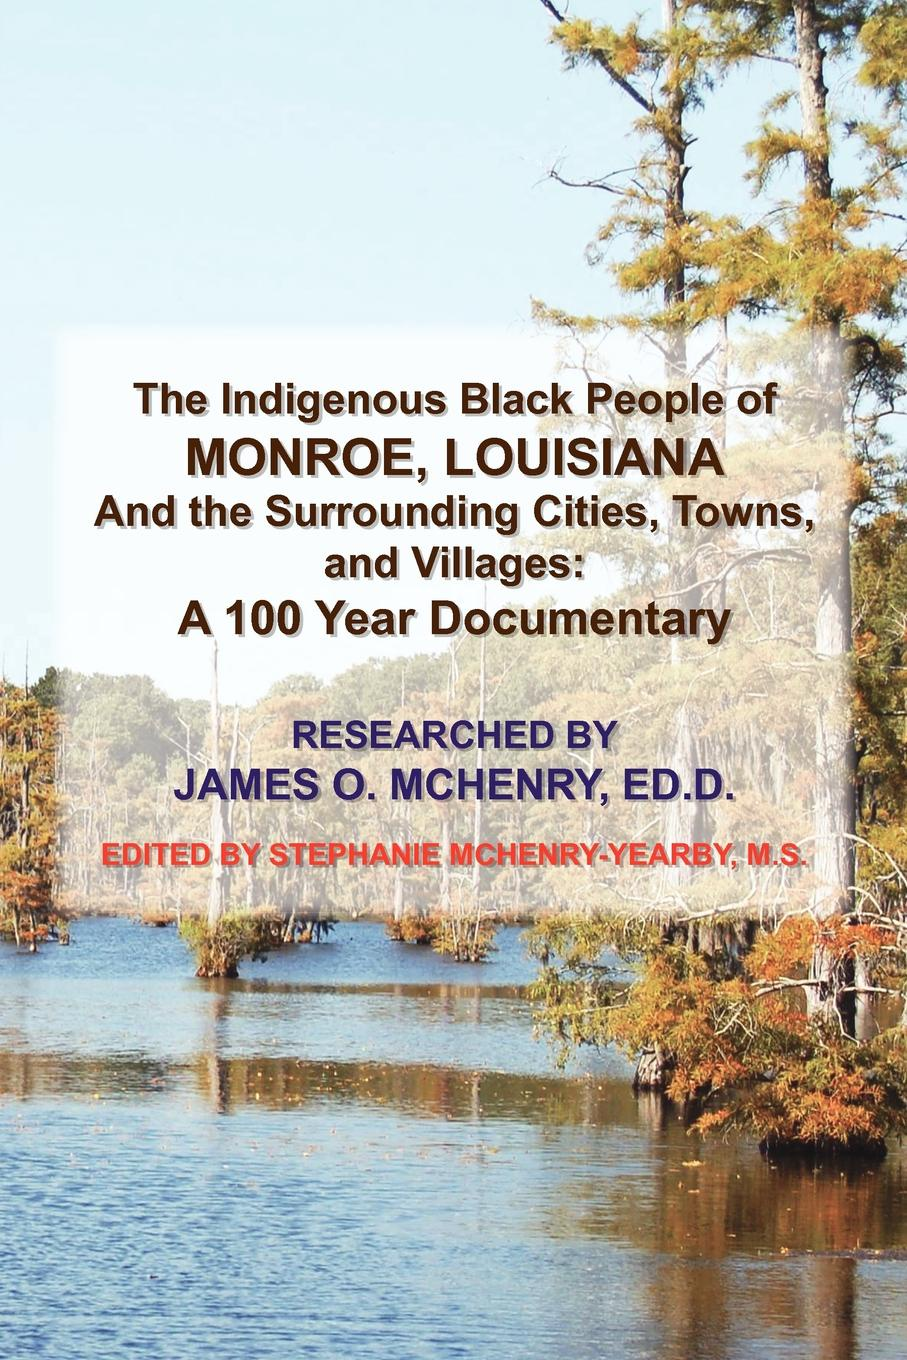 James O. Ed D. McHenry The Indigenous Black People of Monroe, Louisiana and the Surrounding Cities, Towns, and Villages aging problems of indigenous people of bangladesh